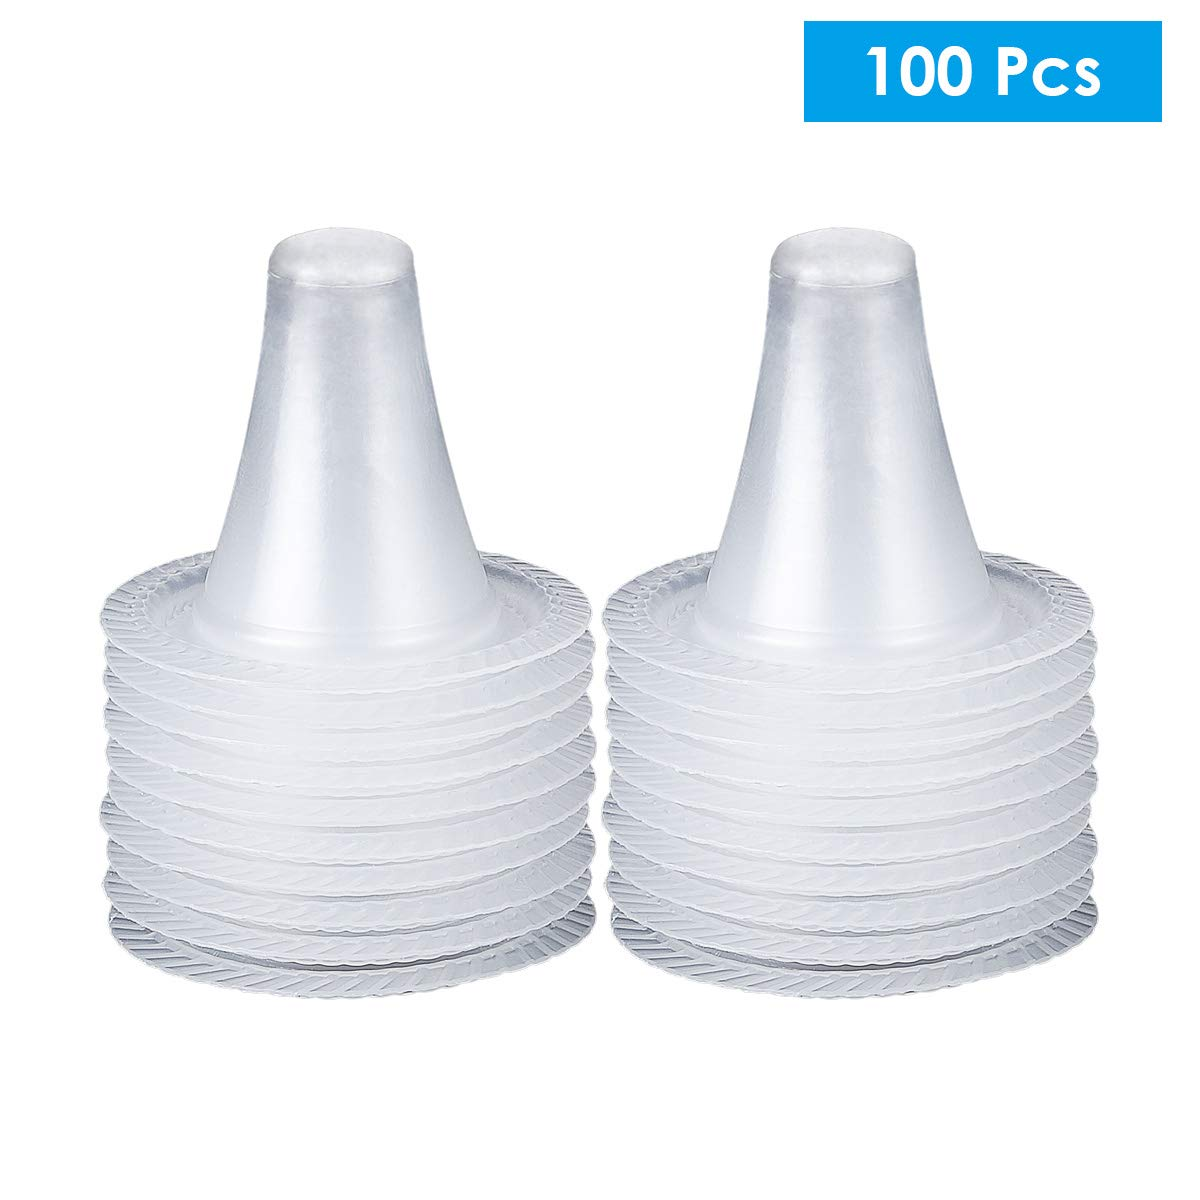 puseky 40pcs Ear Thermometer Probe Covers Lens Filters for Braun ...